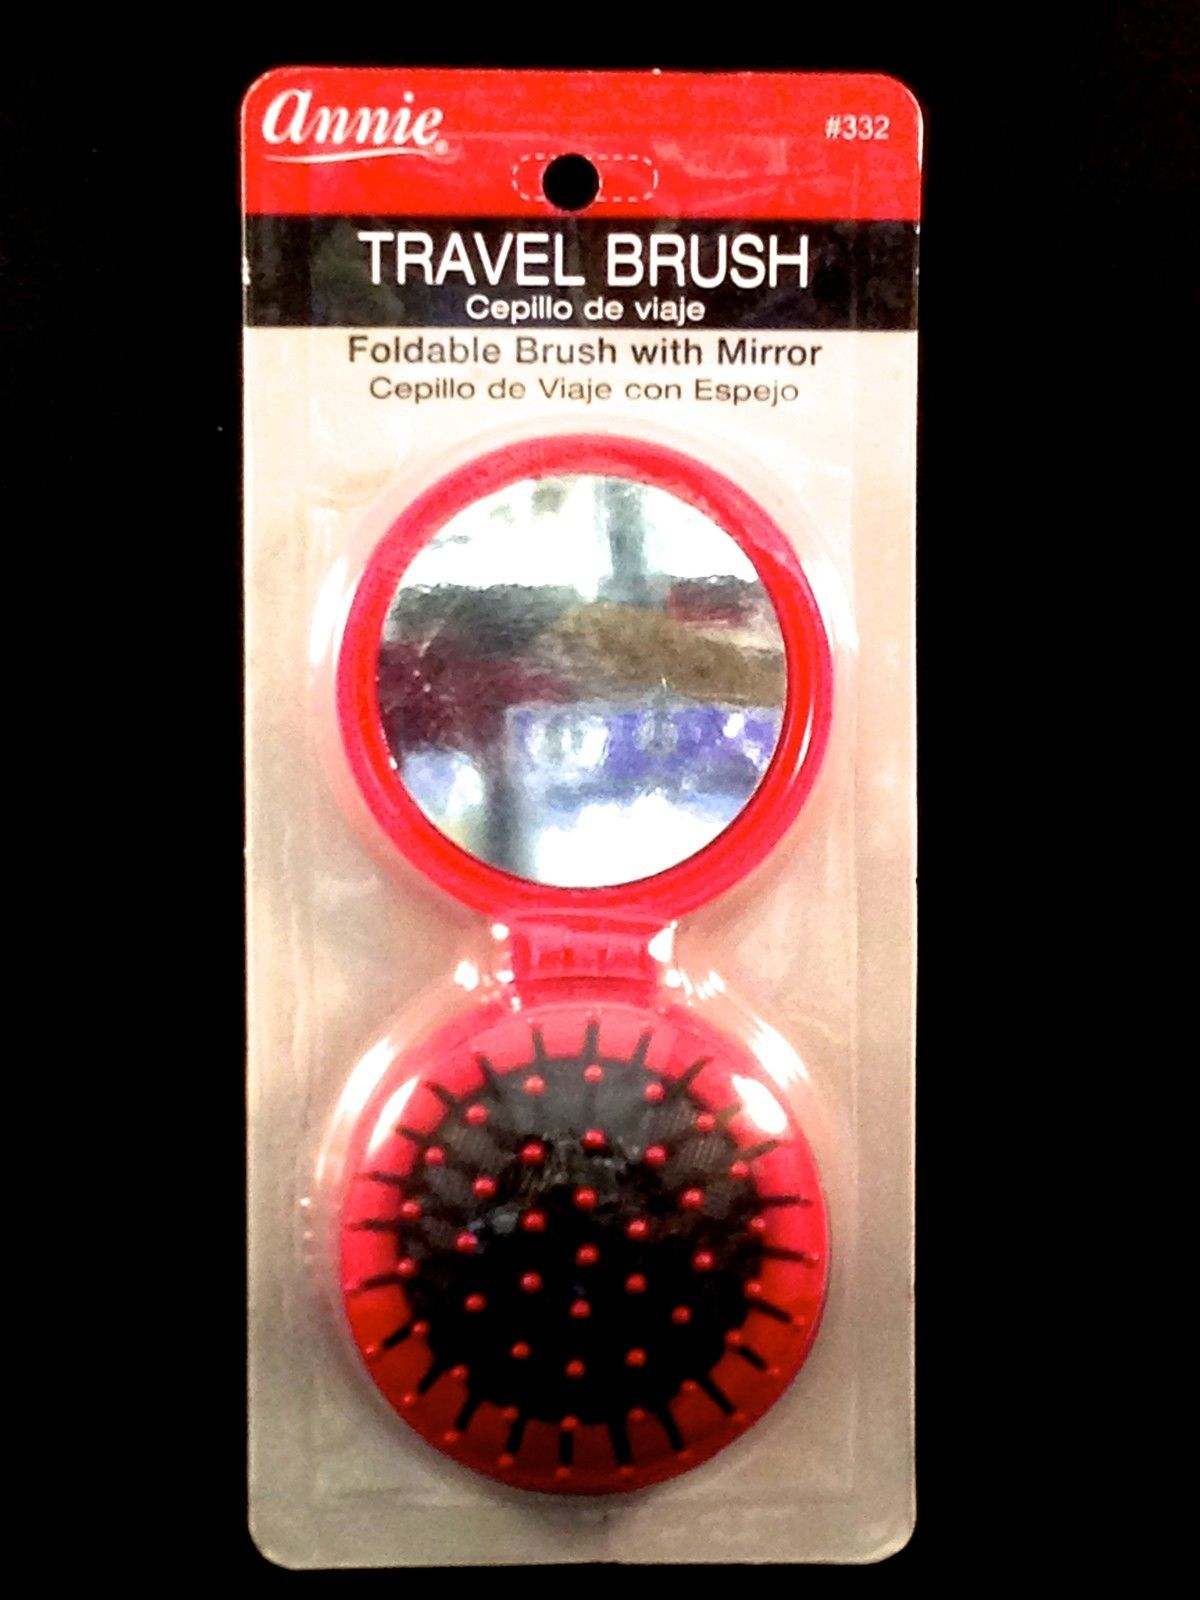 "ANNIE TRAVEL BRUSH FOLDABLE WITH MIRROR ROUND 5.5""x2.5"" #332"